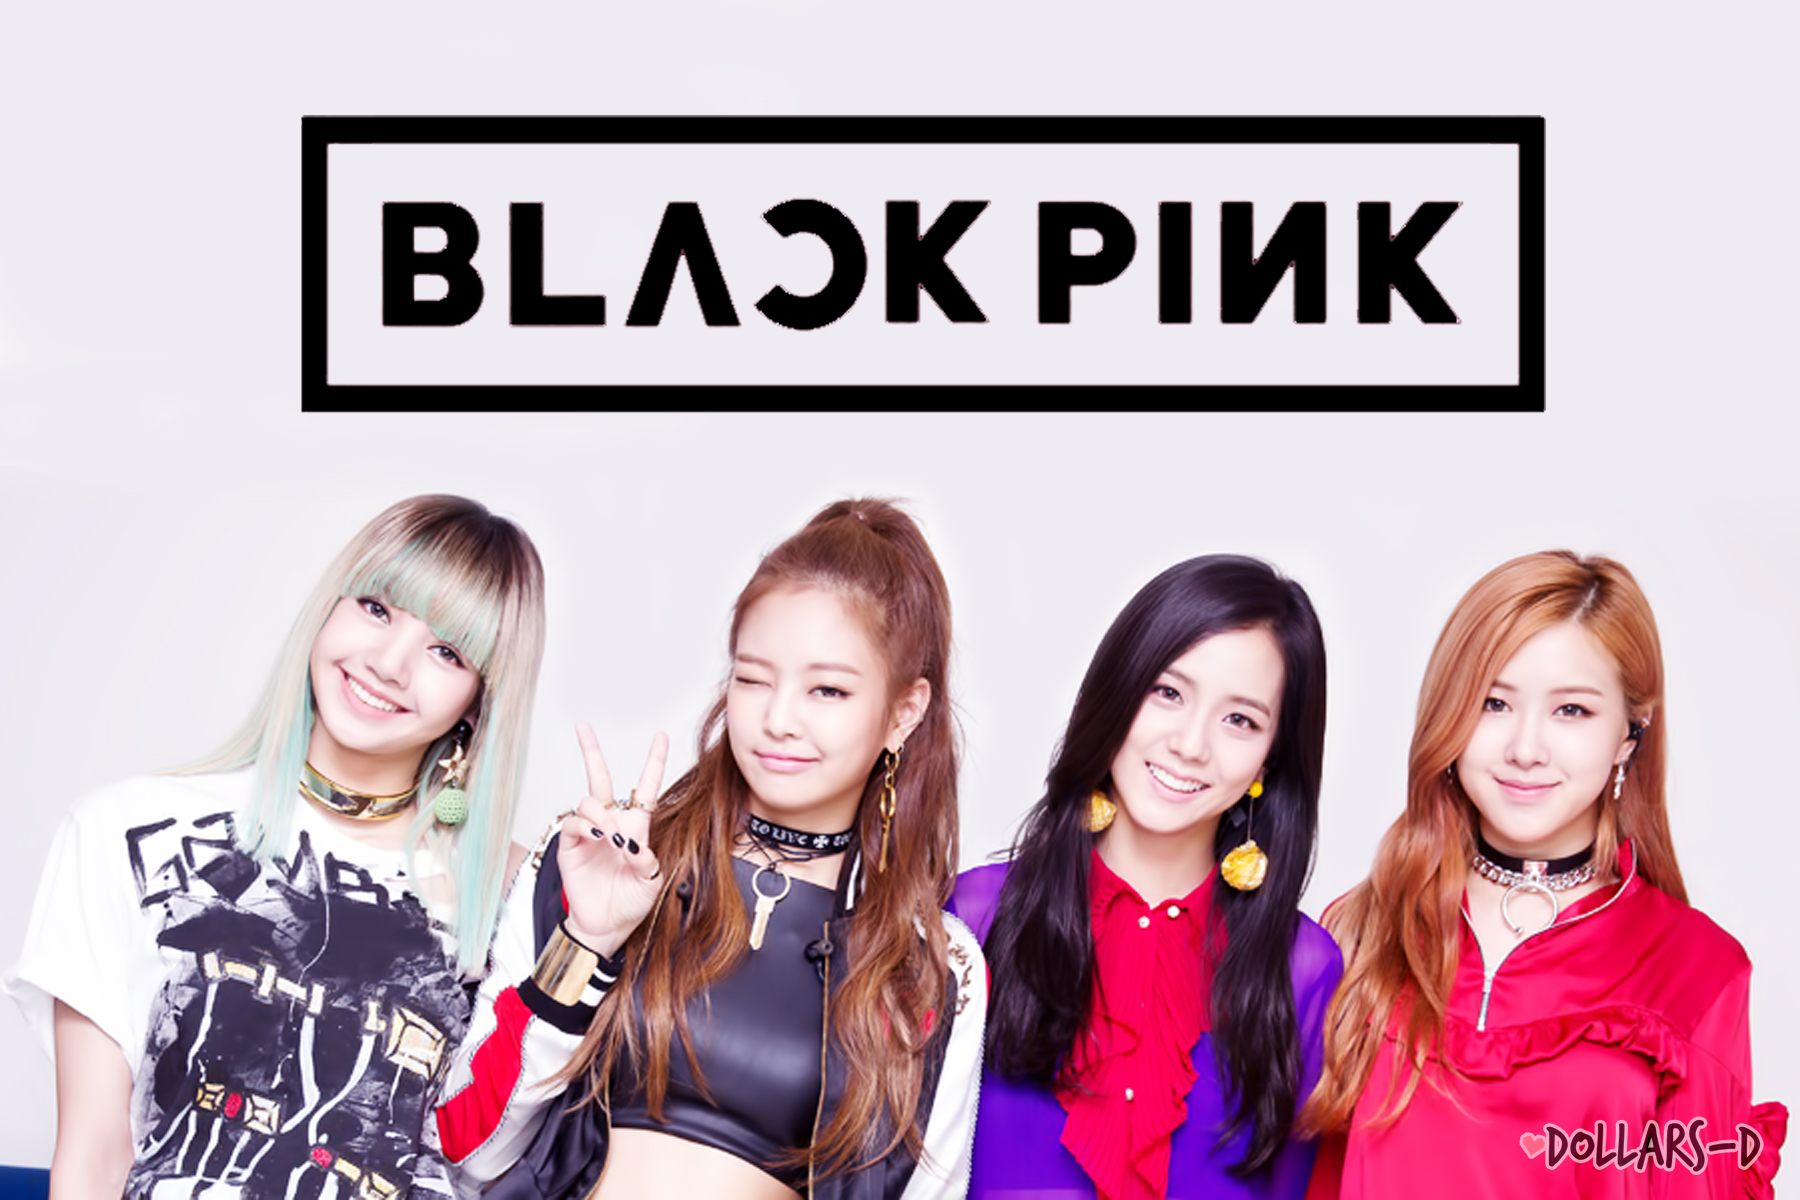 Black Pink images BLACKPINK HD wallpaper and background photos 1800x1200